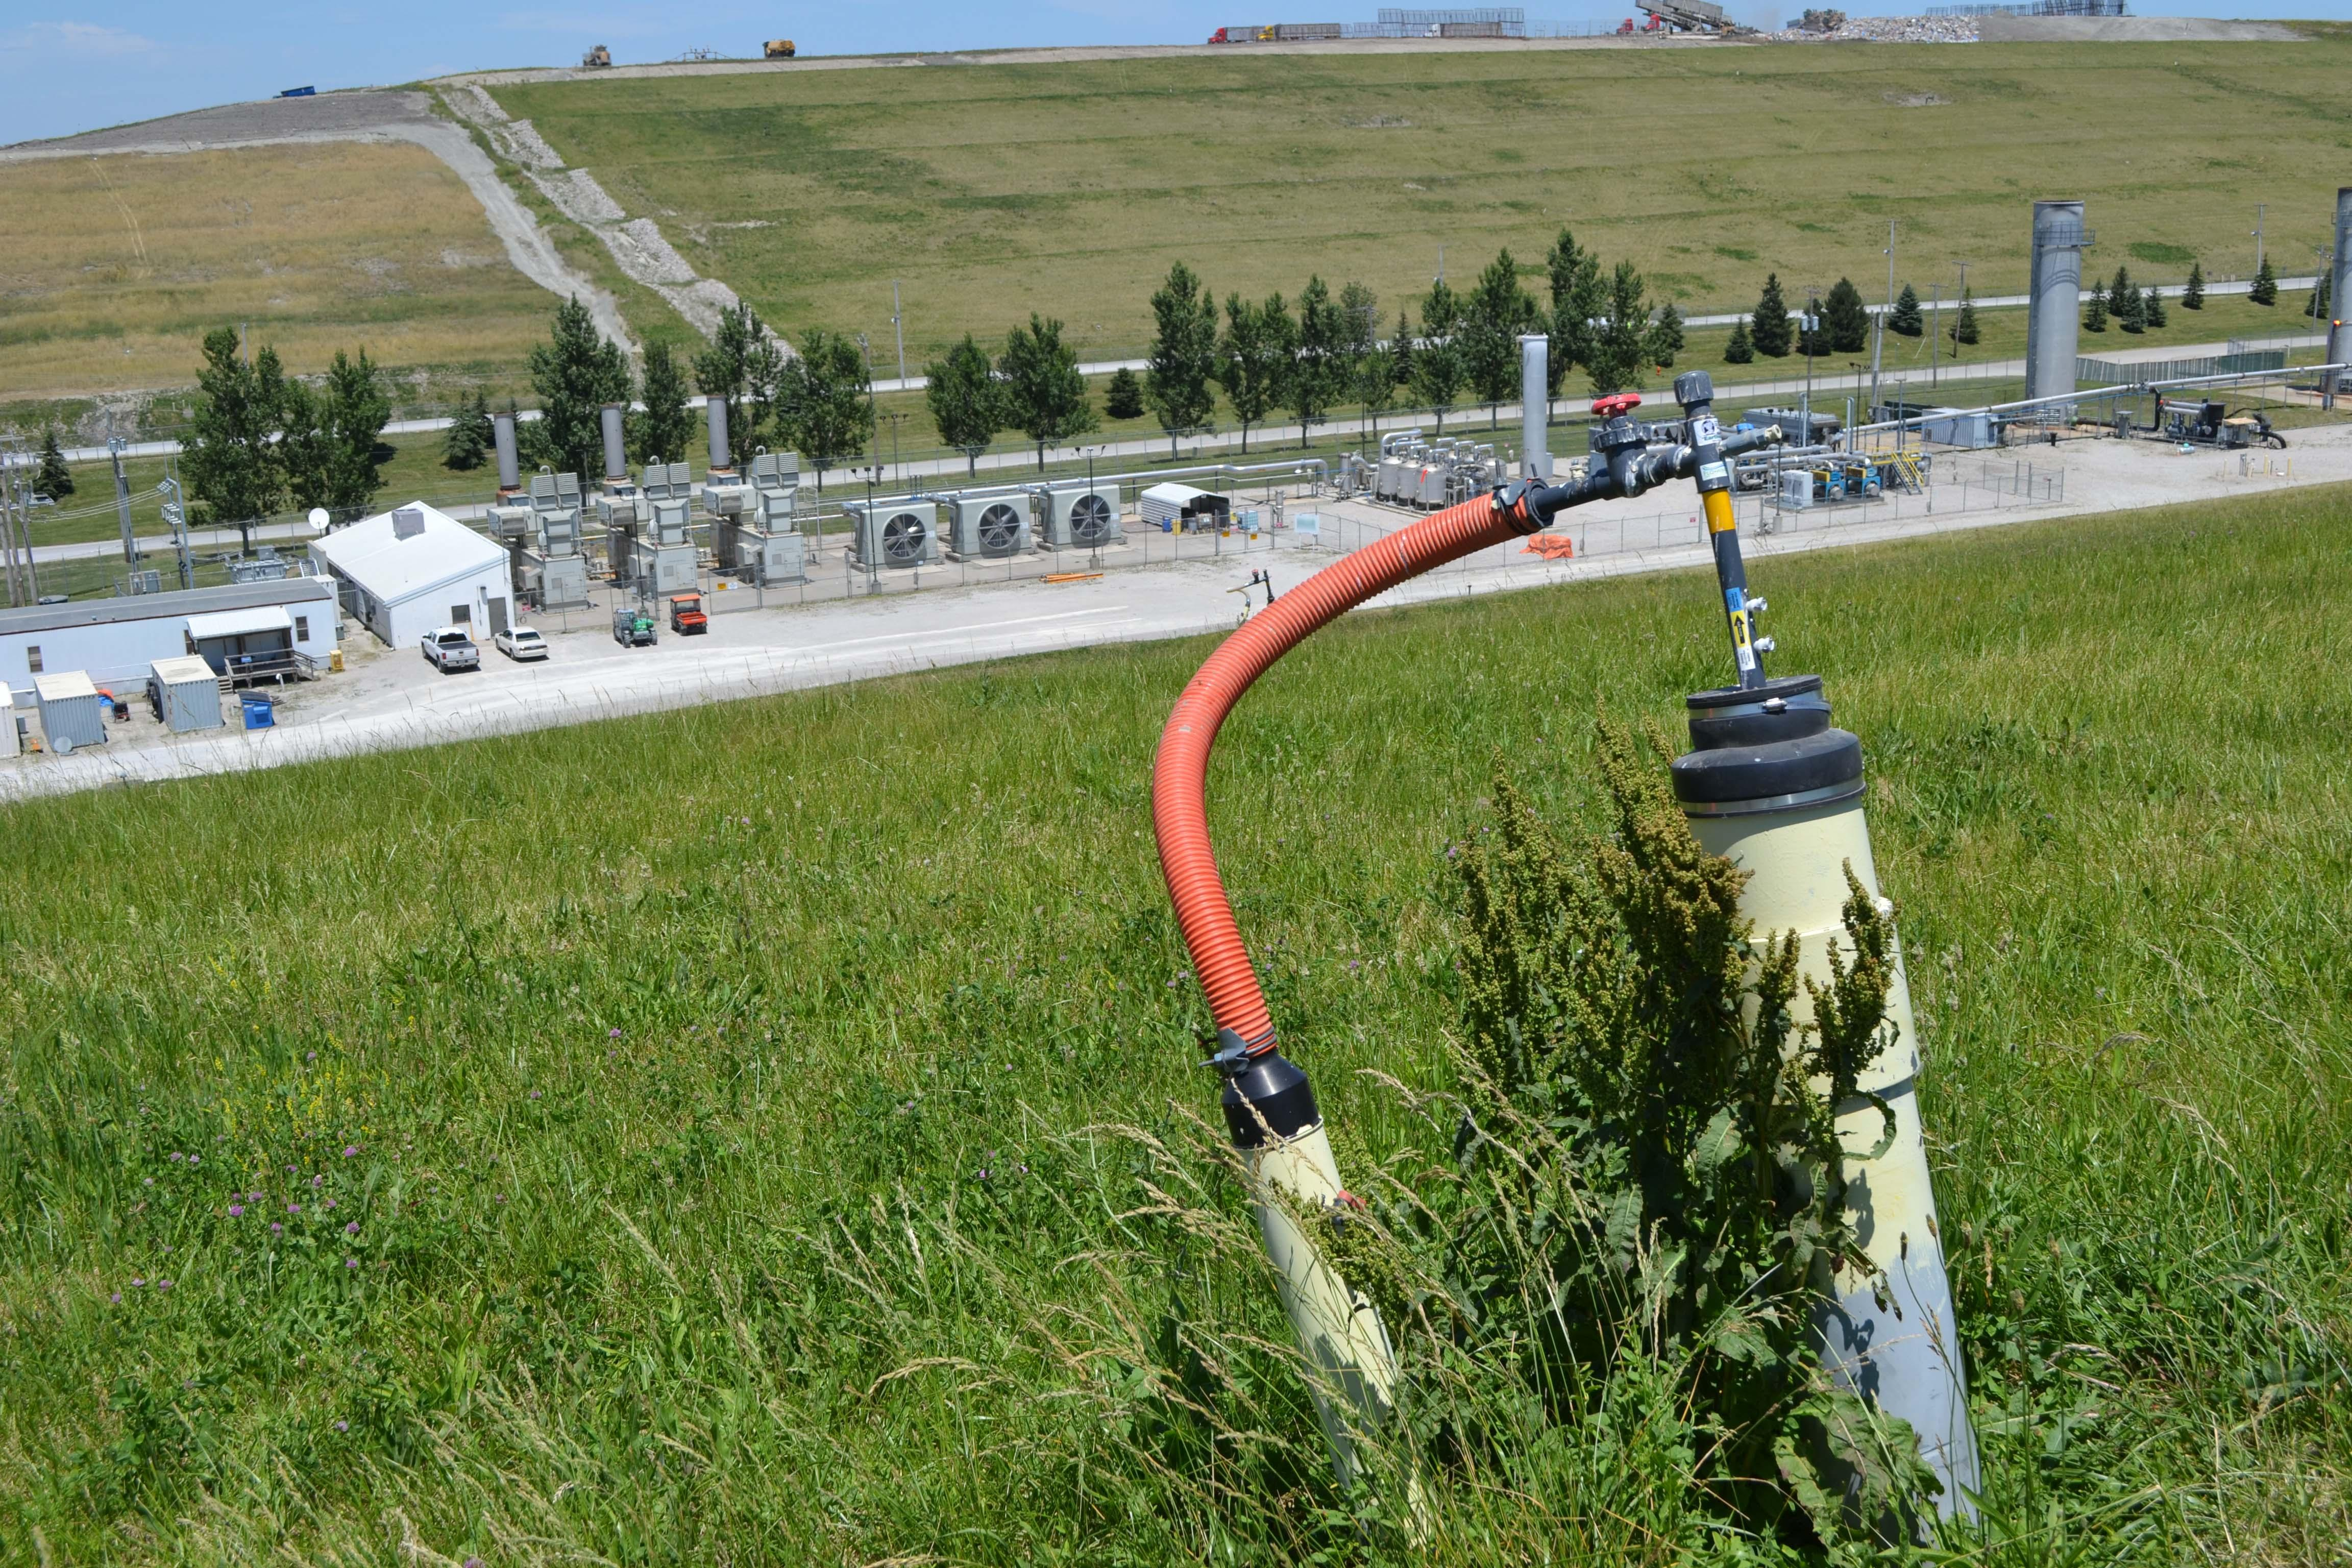 Many modern landfills employ an elaborate network of pipes and vacuums to capture greenhouse gases.